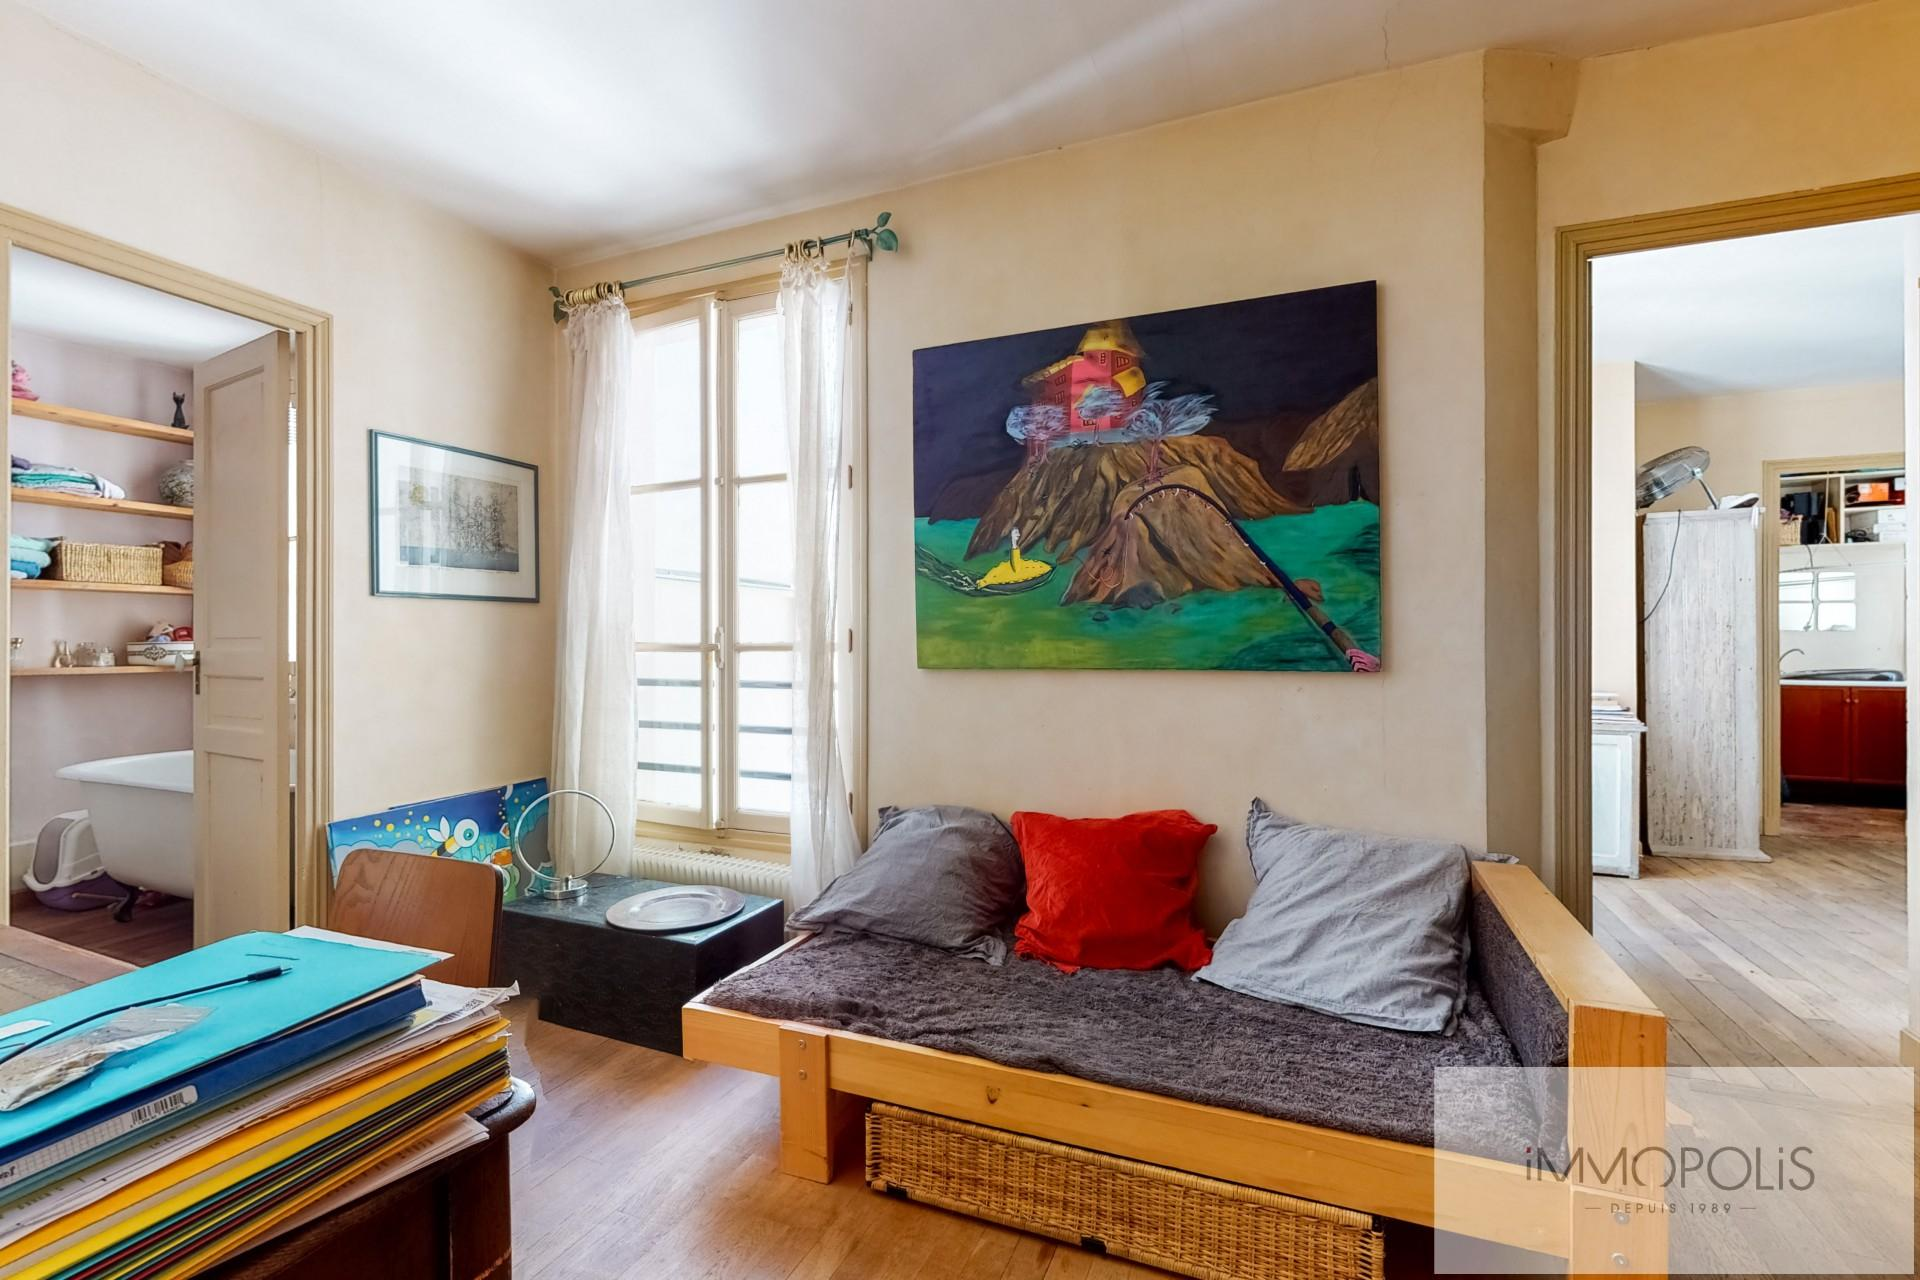 Atypical apartment, full of charm, Rue Richard Lenoir – Paris XIth 8